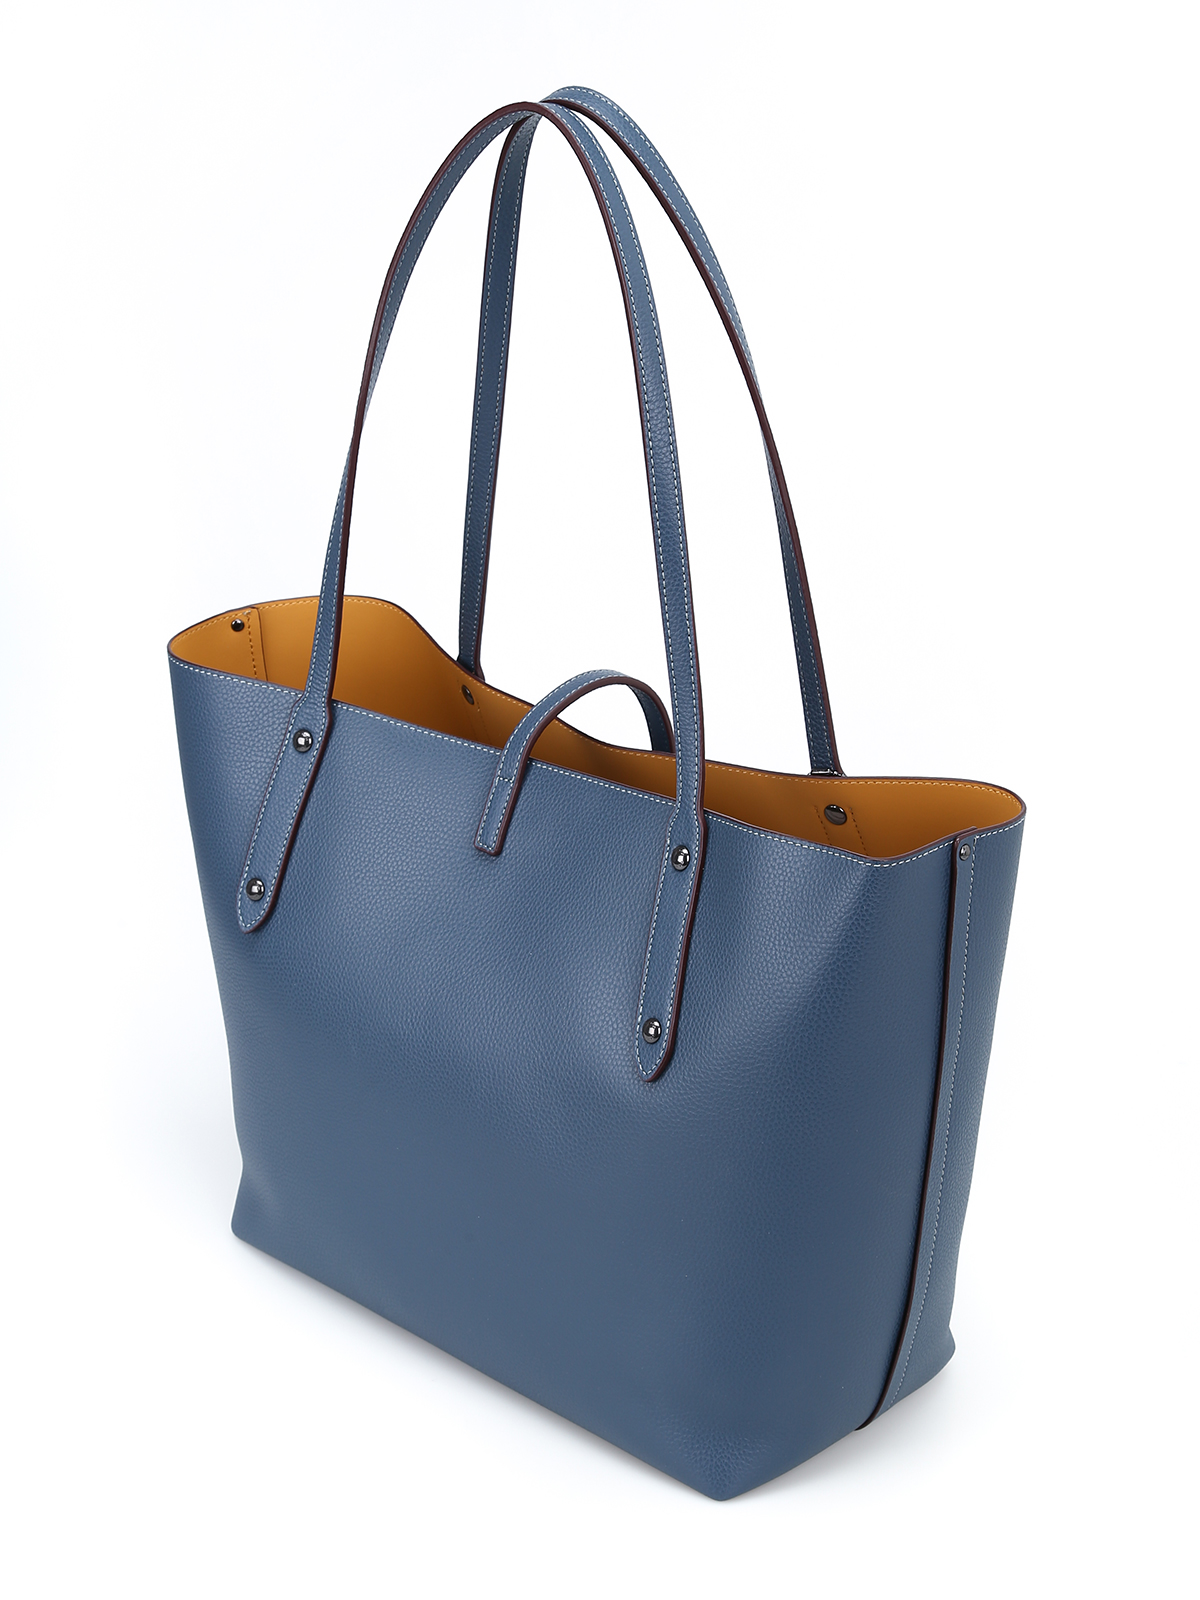 Coach - Market leather large tote - totes bags - 58849DKN47 ...